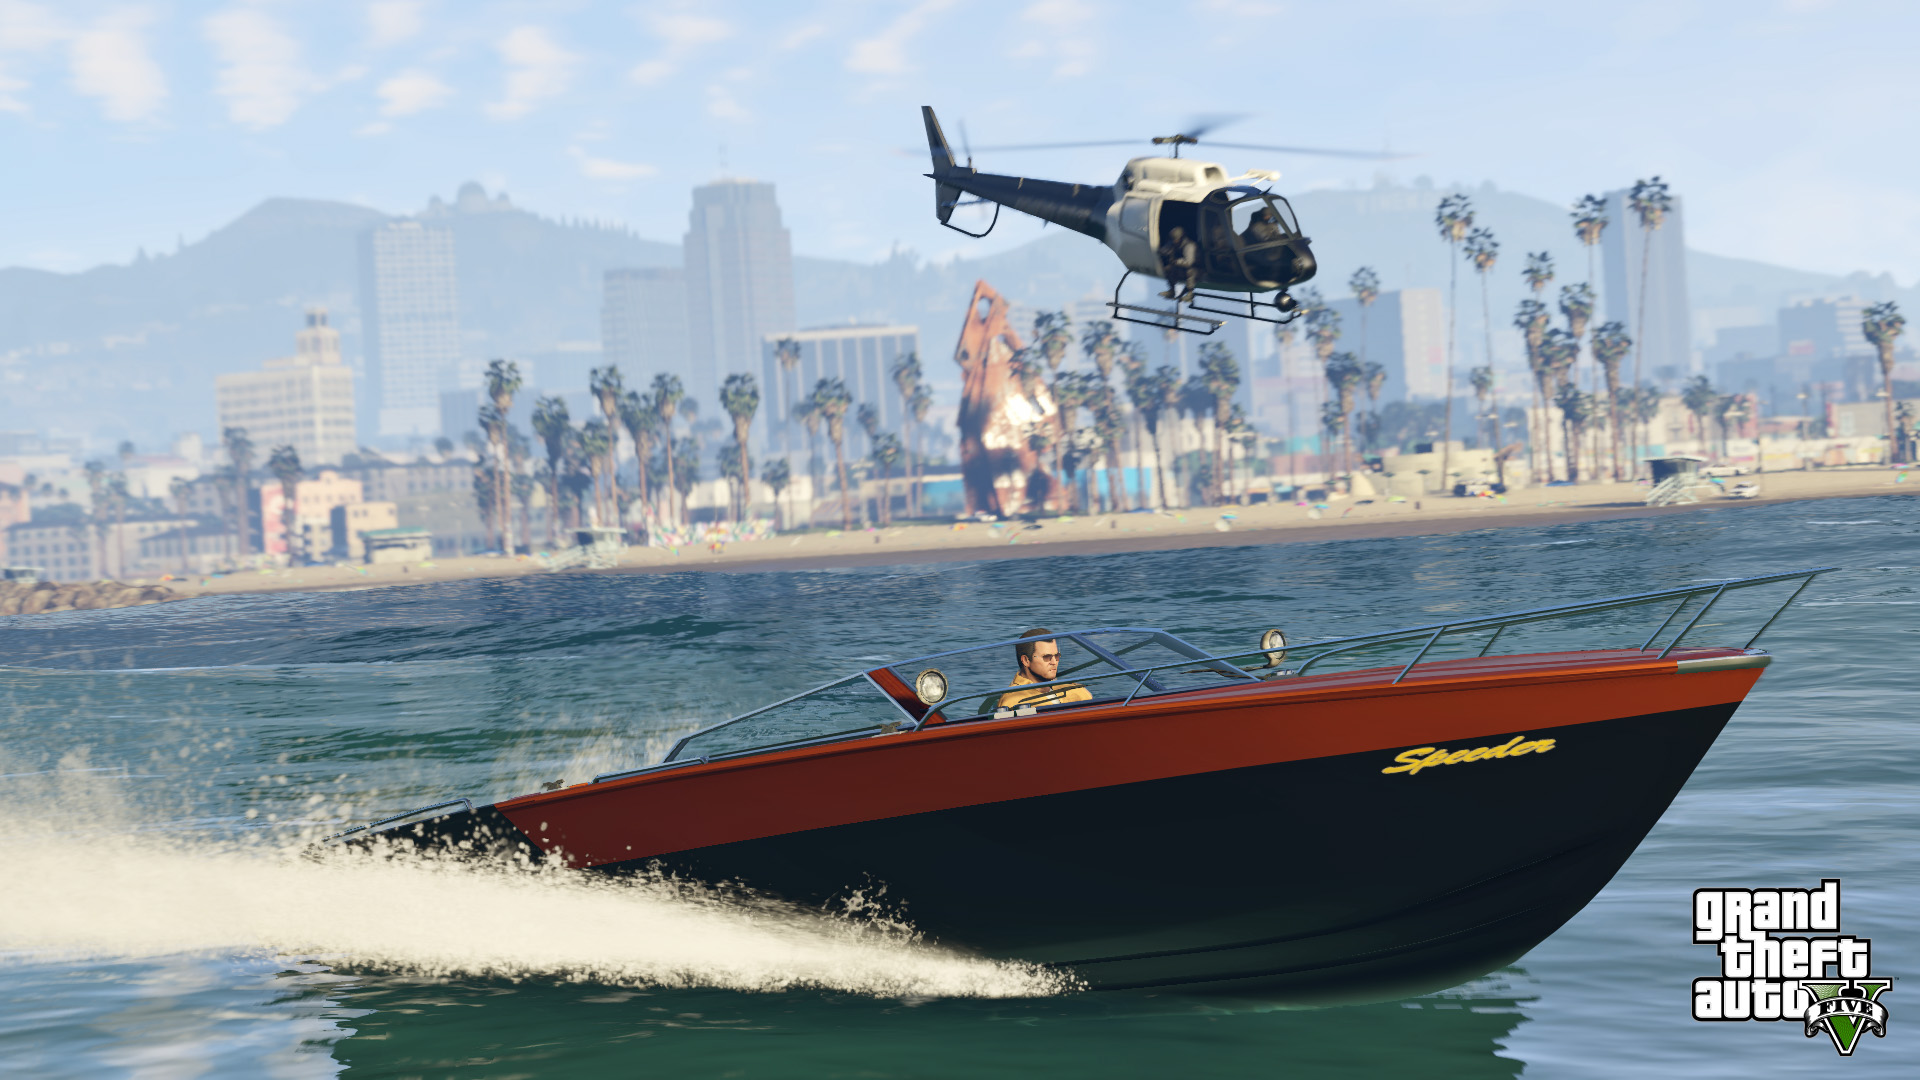 Here are the Xbox One & PS4 GTA 5 cheats to unlock weapons, vehicles and total control over San Andreas.